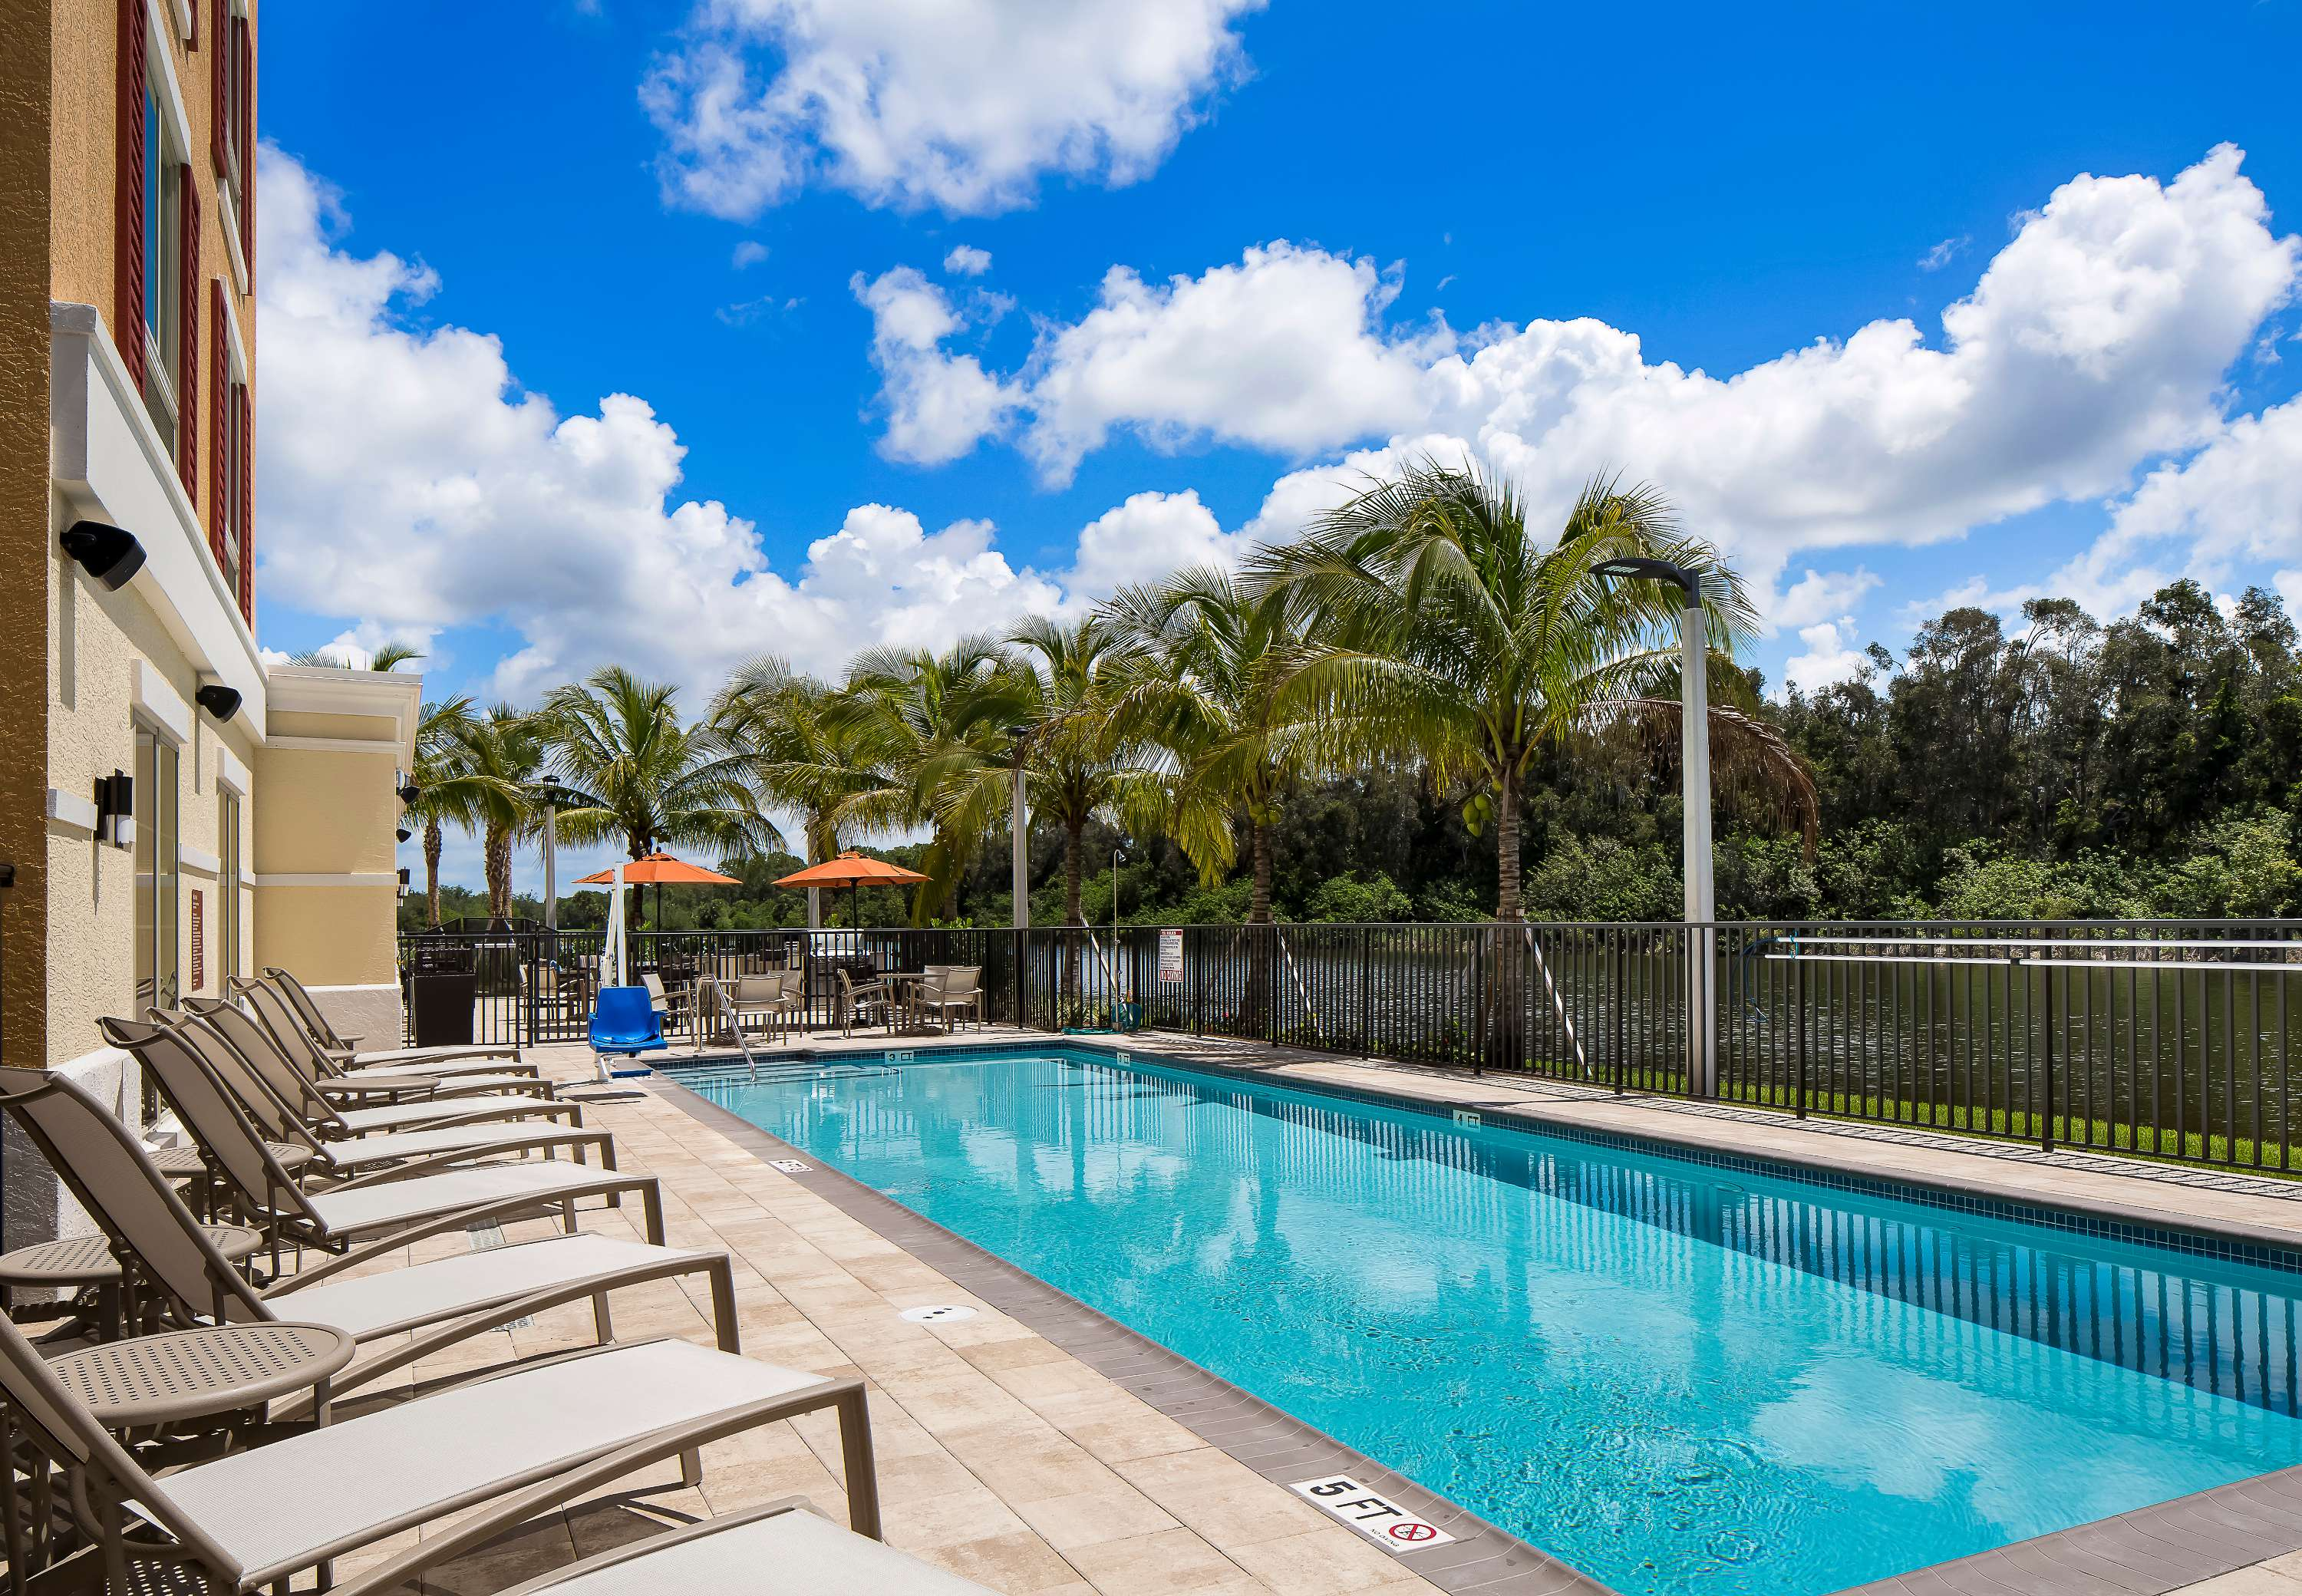 TownePlace Suites by Marriott Fort Myers Estero image 22